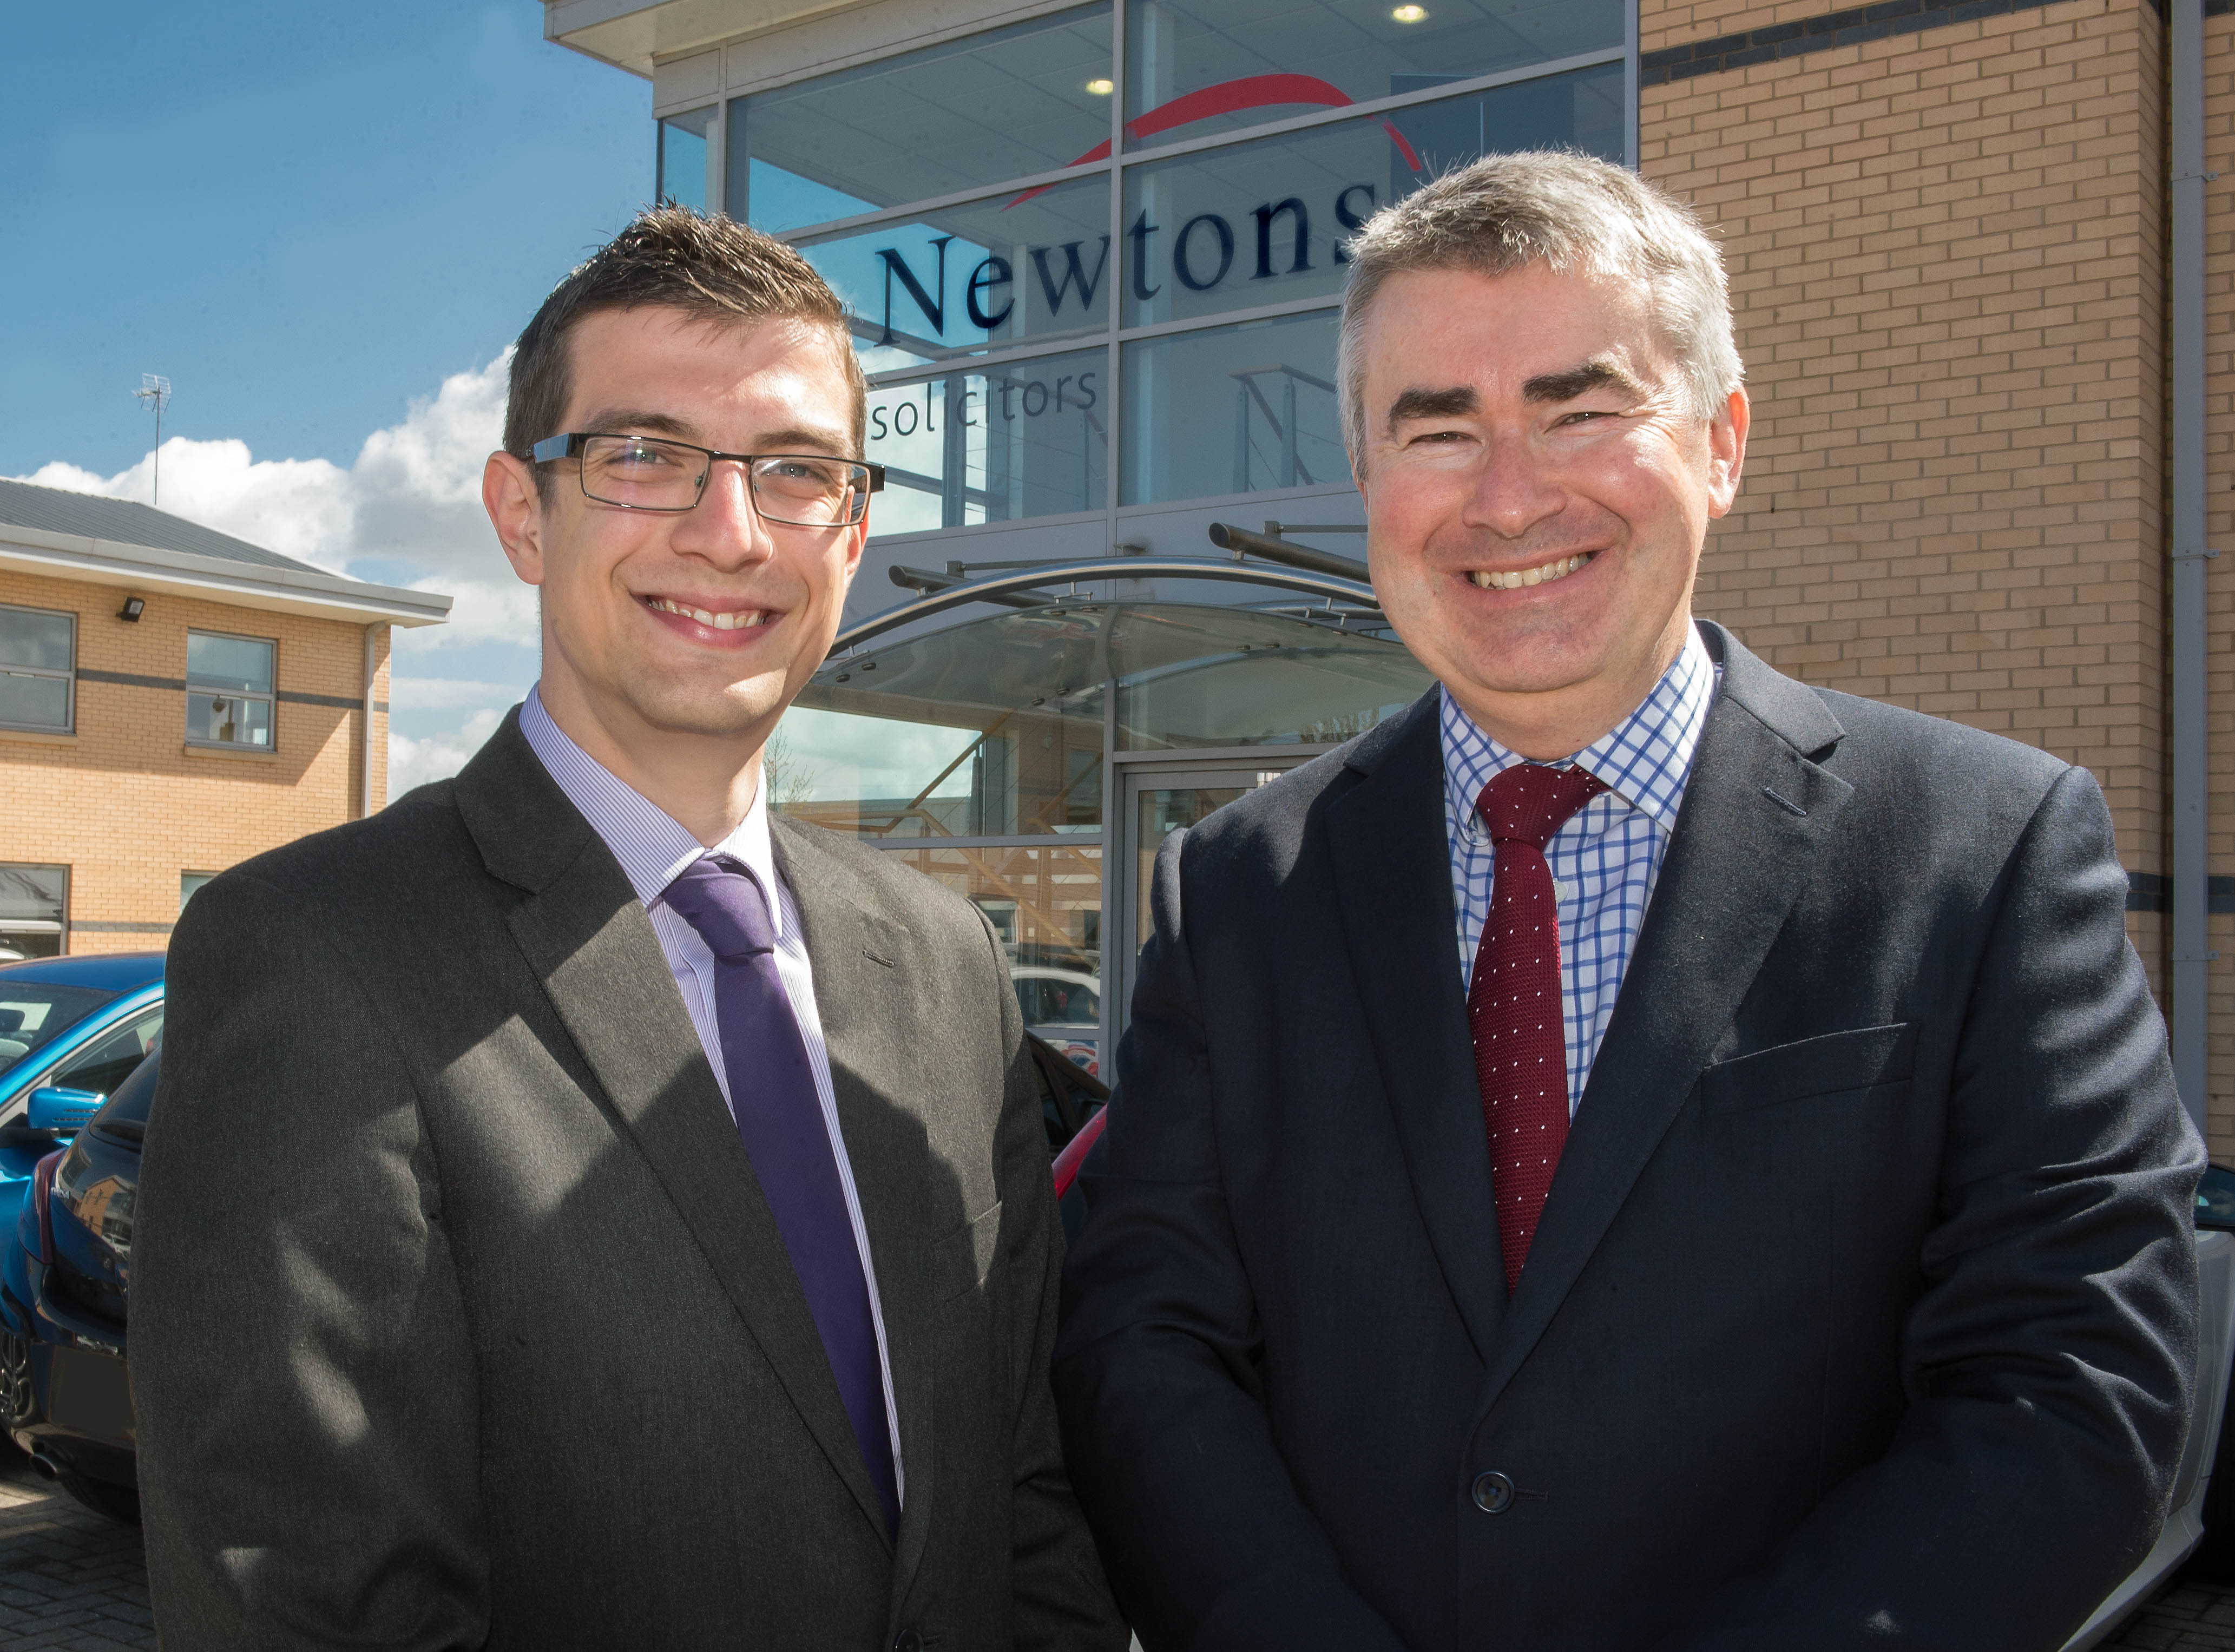 Chris and Ryan from Newtons Solicitors